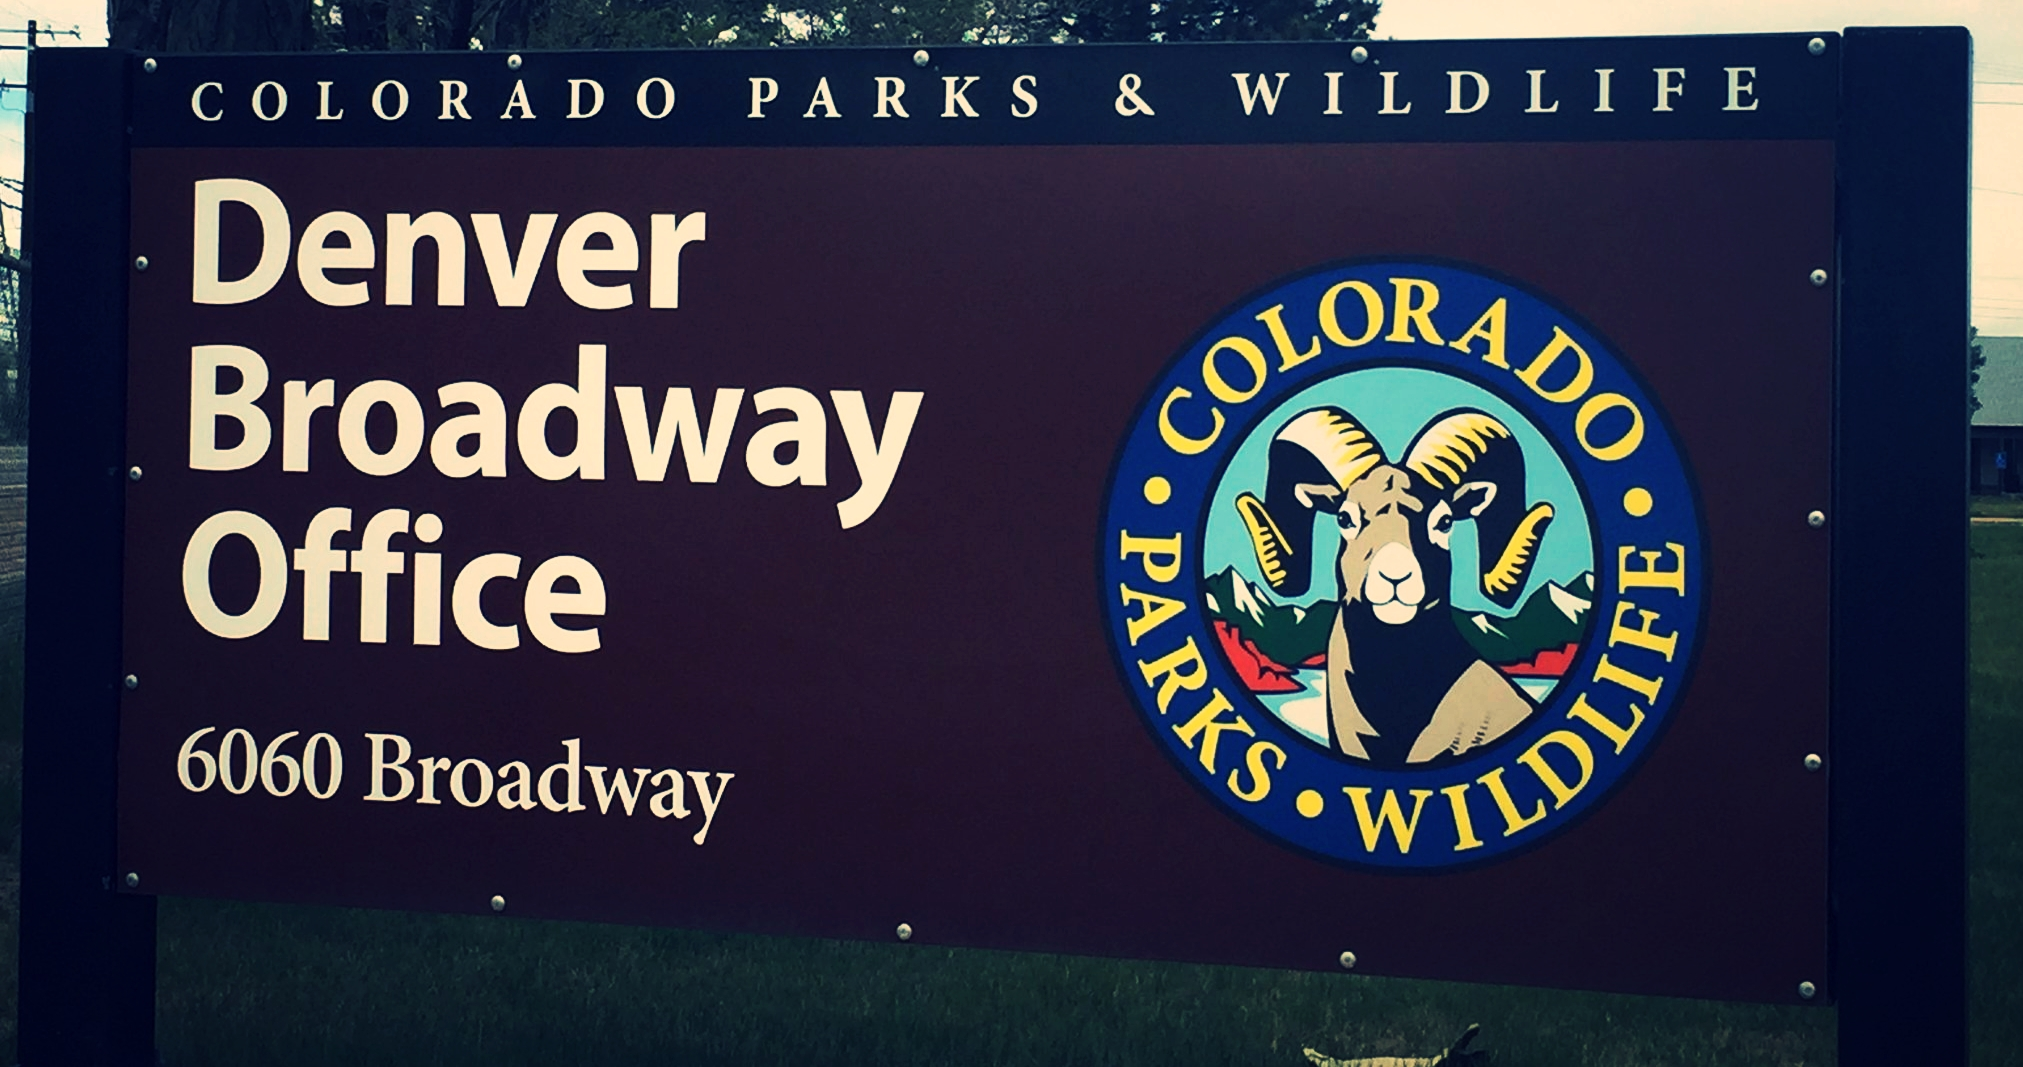 Many hearings for the Colorado Parks and Wildlife Commission take place at the Denver Broadway Office.